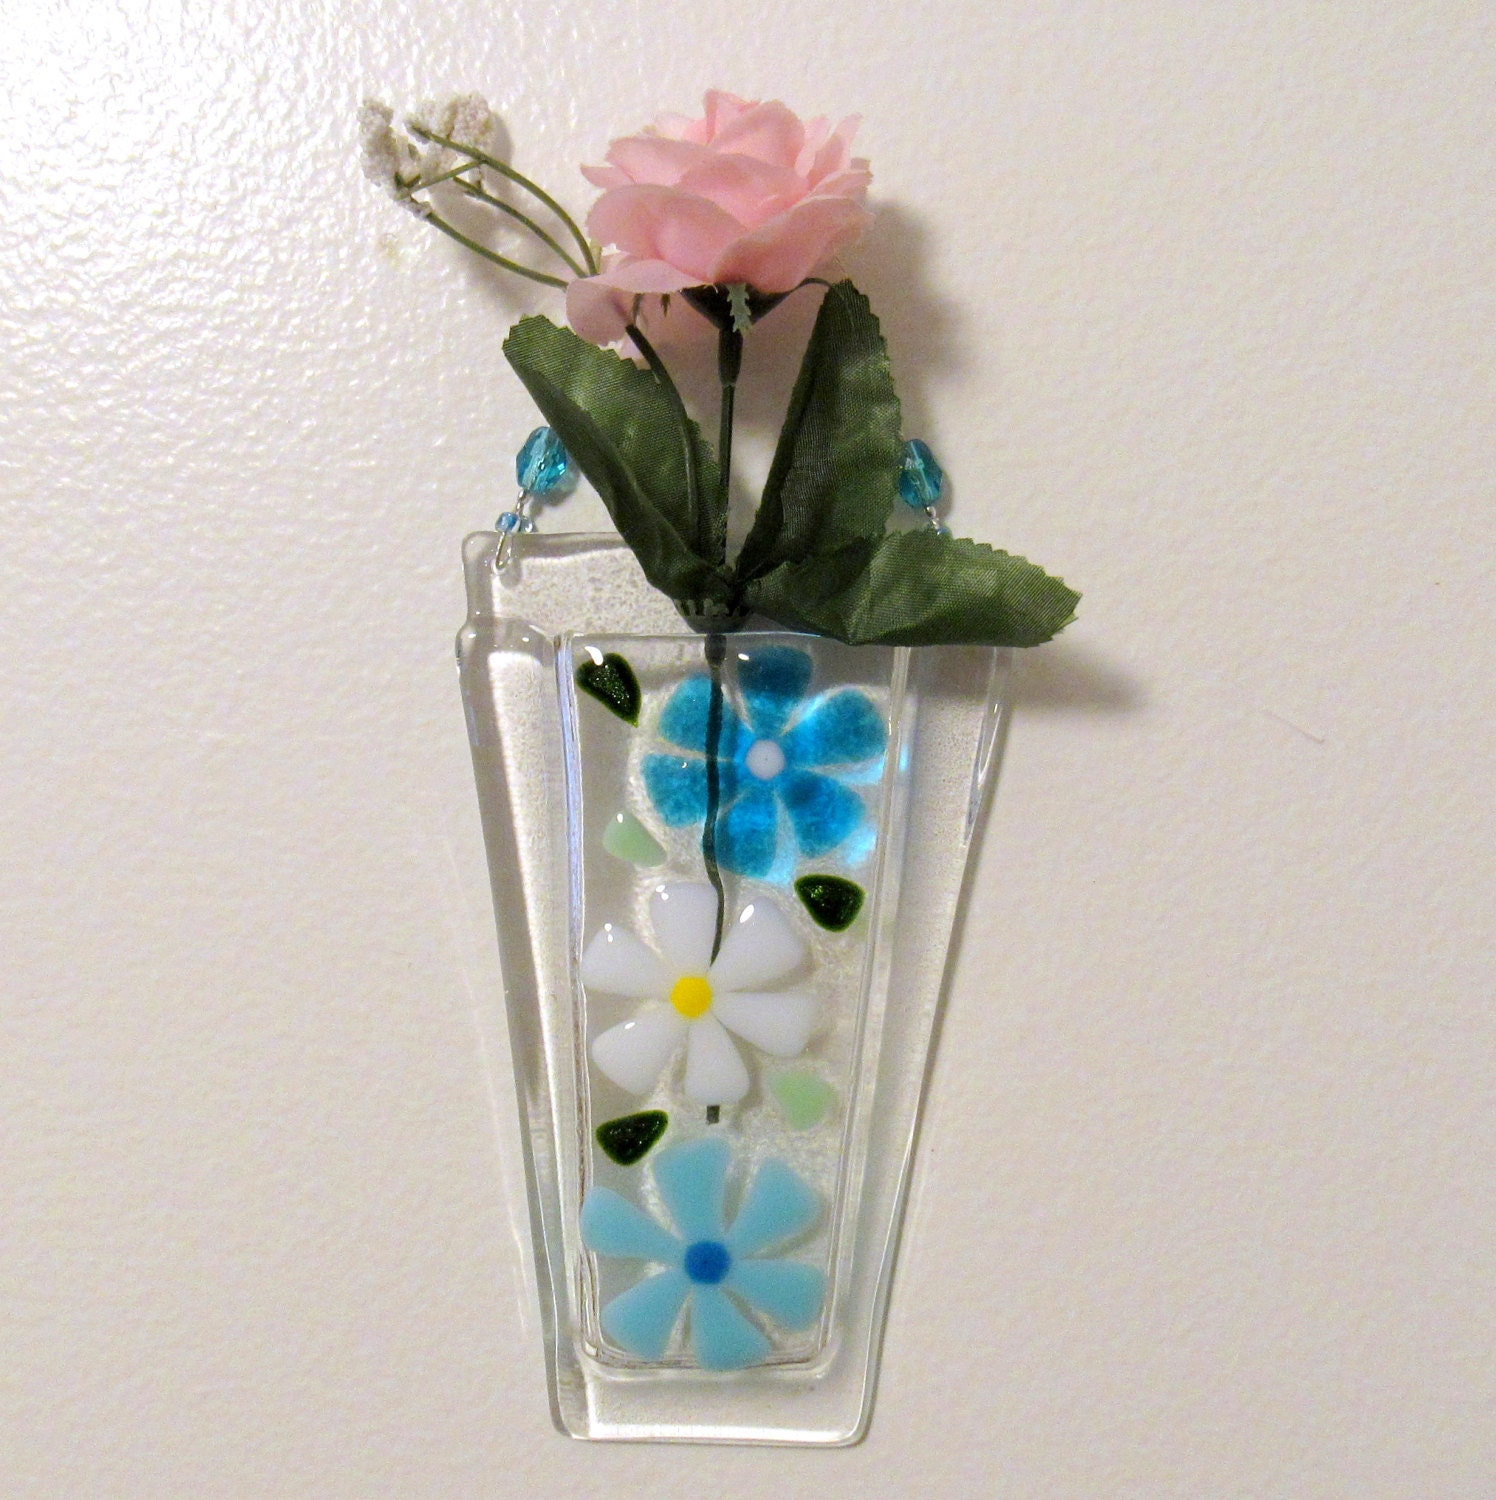 Wall vases for flowers - Fused Glass Wall Vase Glass Flower Vase Glass Wall Hanging Pocket Turquoise And White Flowers Mothers Day Flowers Vase Gift Glass Daisy